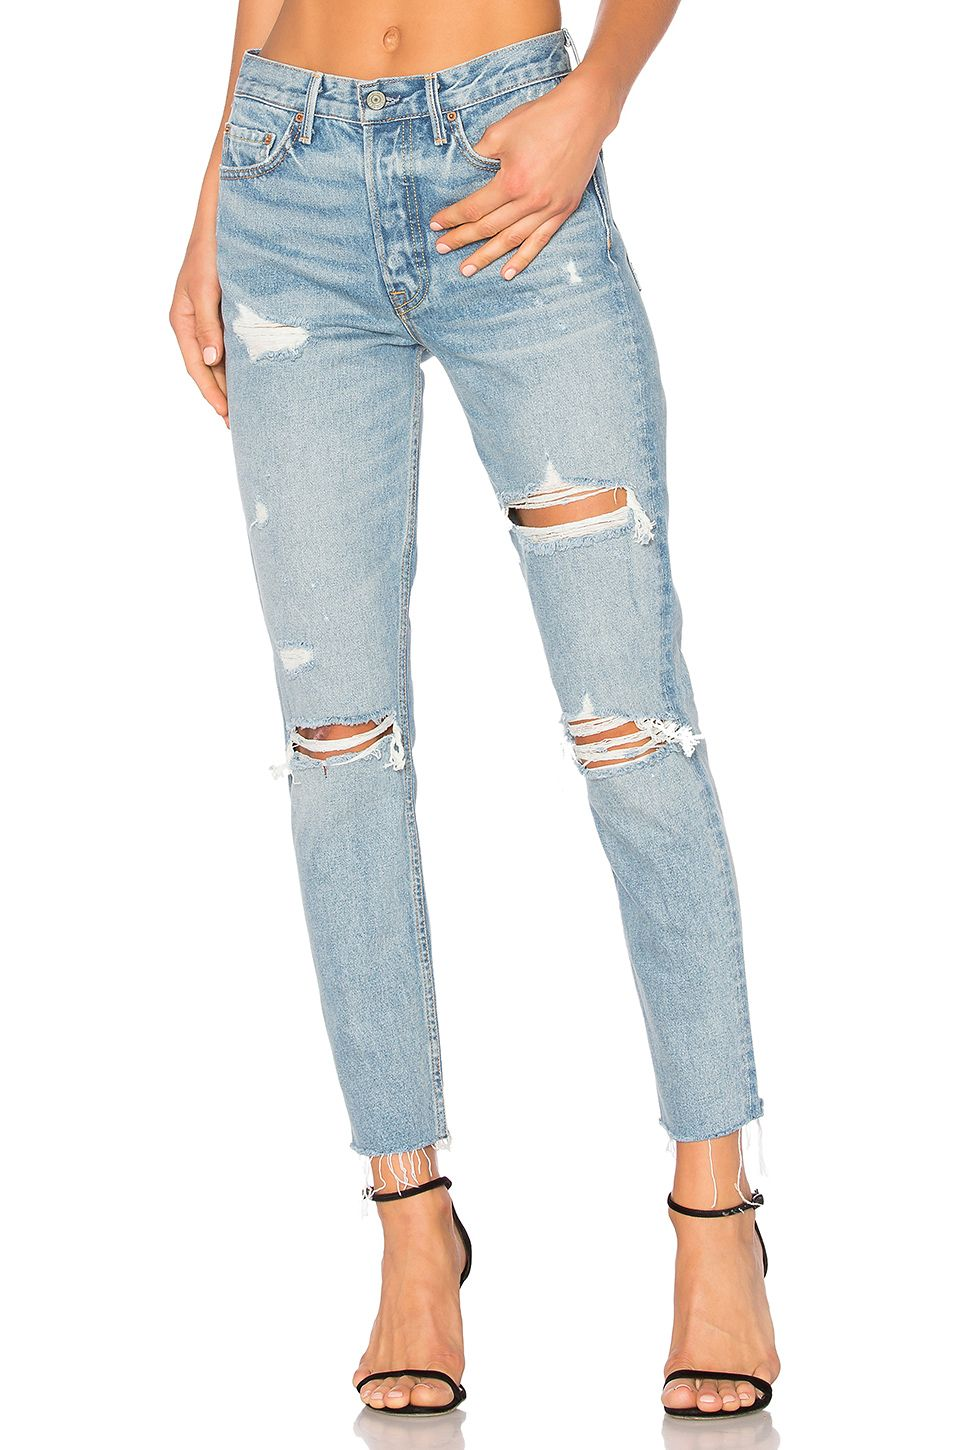 distressed jeans - Blue GRLFRND Sale Limited Edition Real Cheap Online Big Sale Sale Online Best Store To Get For Sale Cheap Fashion Style AGCRm1Hou